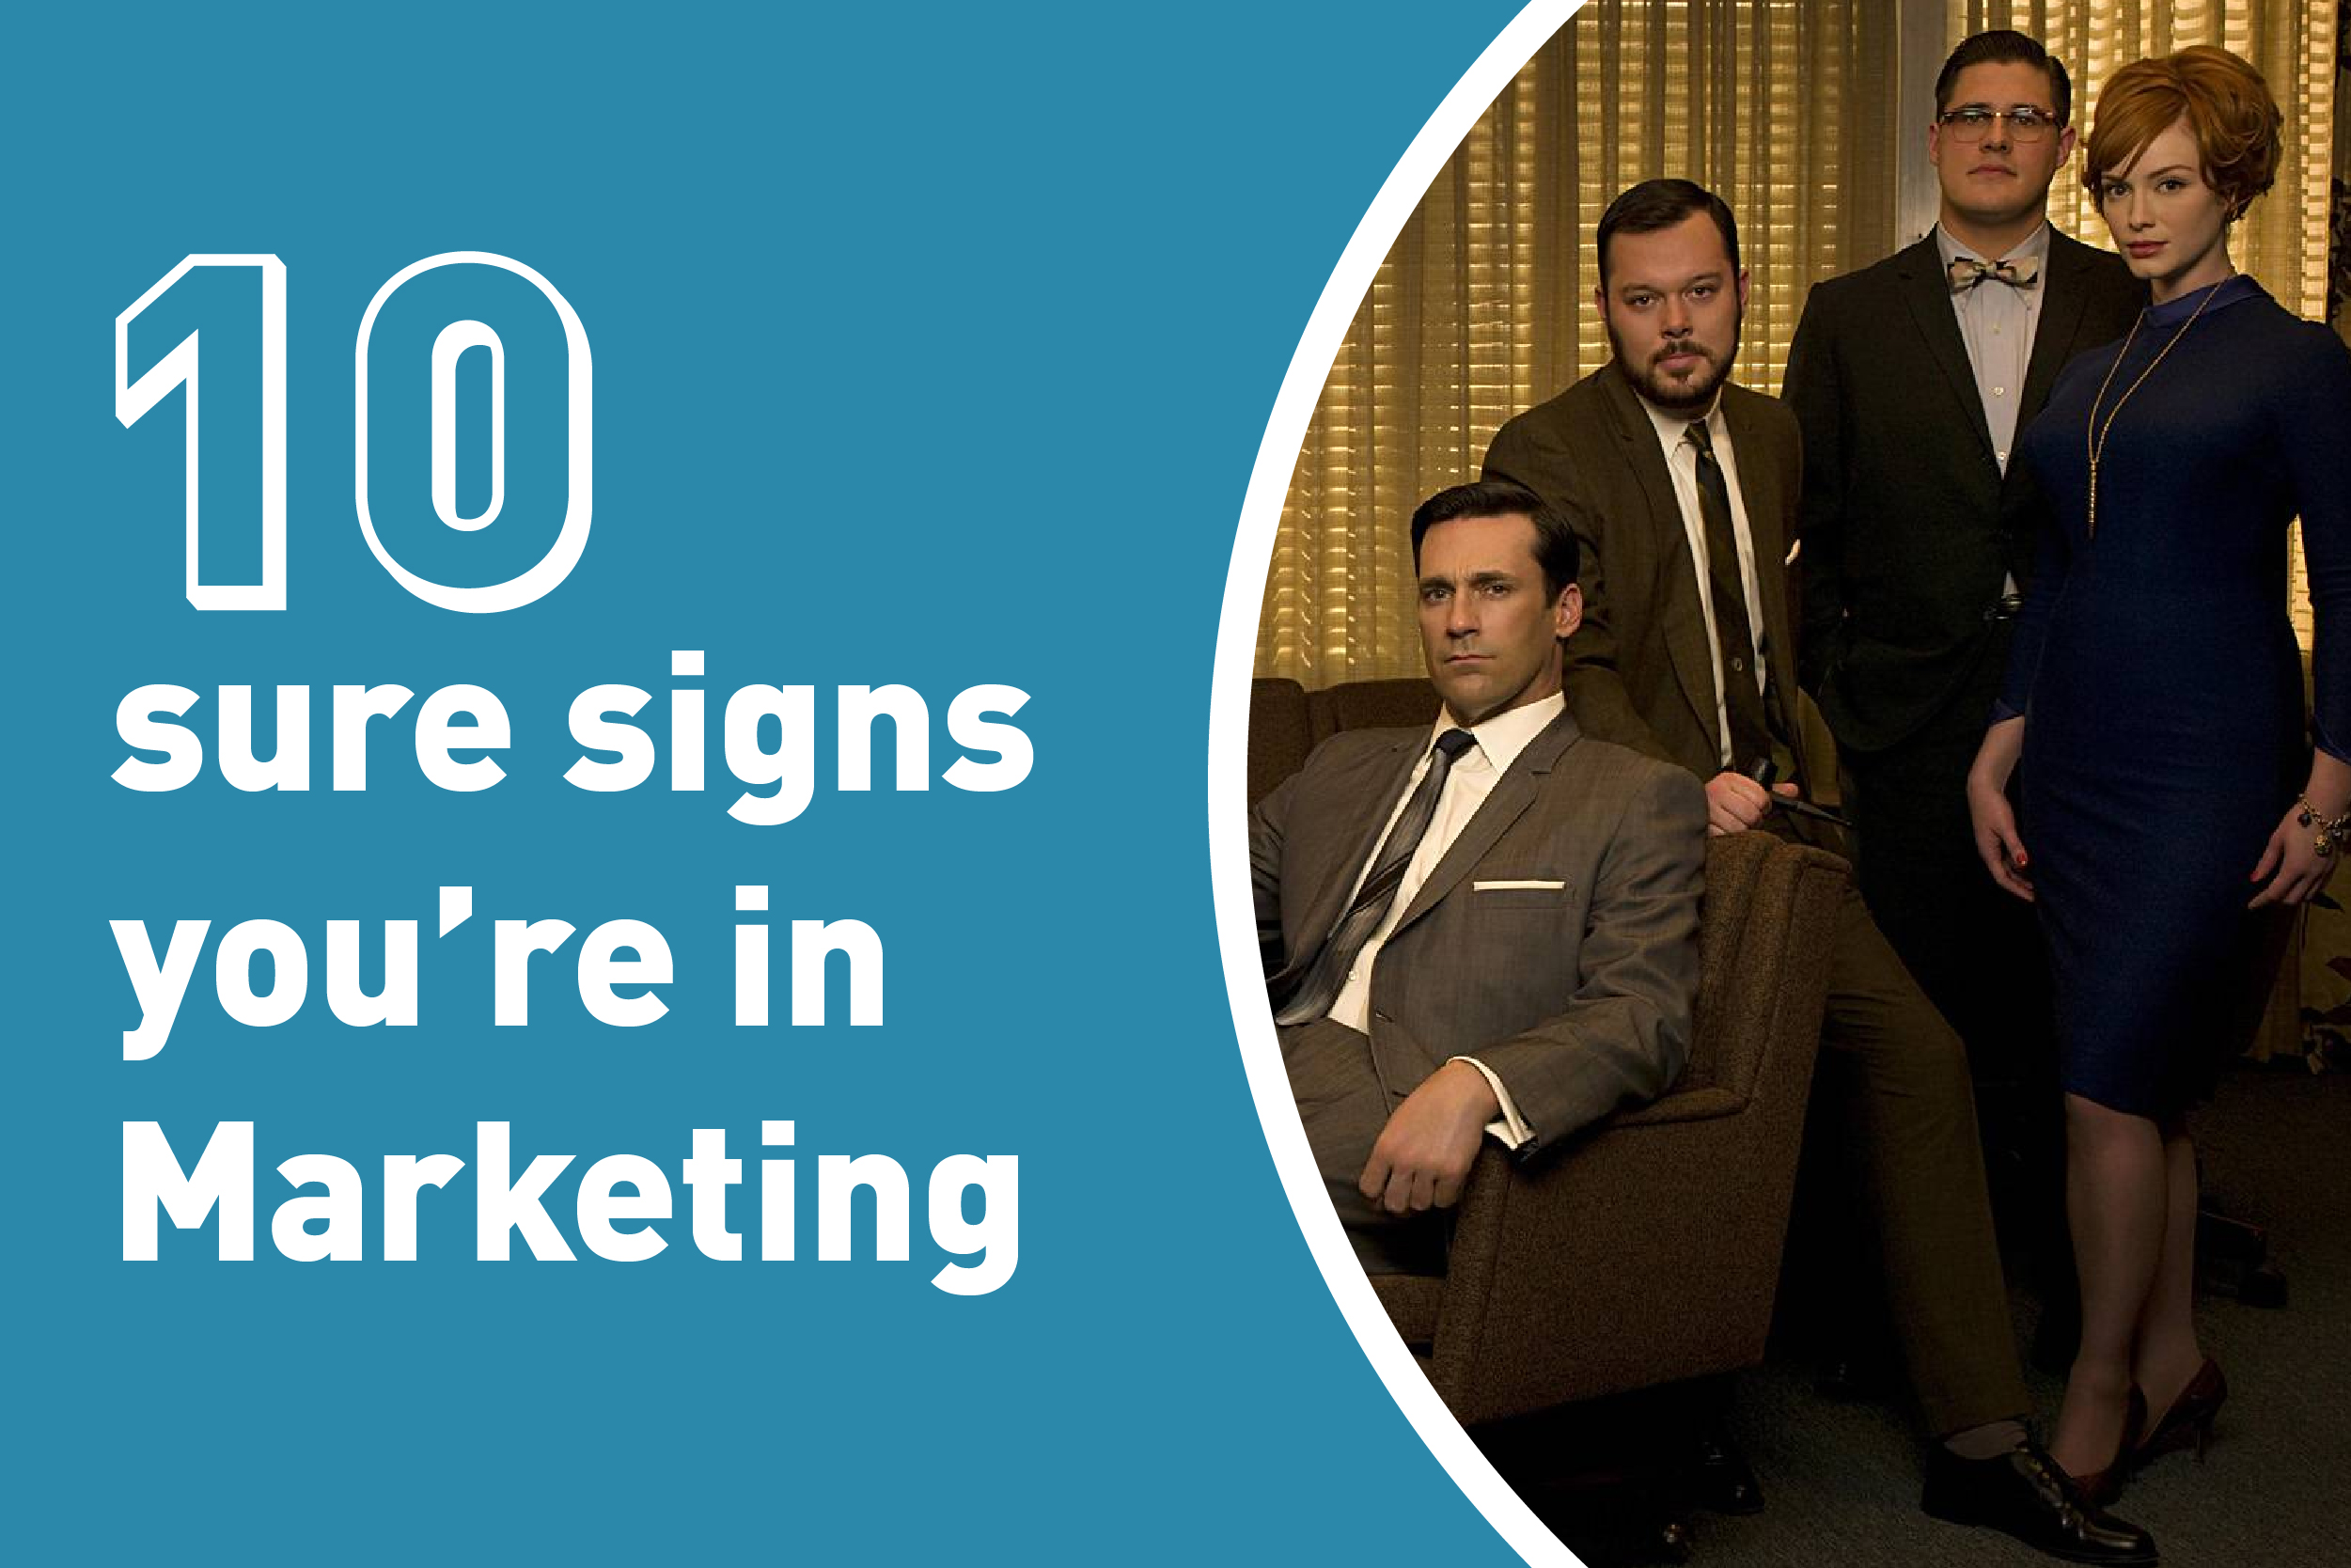 10 sure signs you're in Marketing